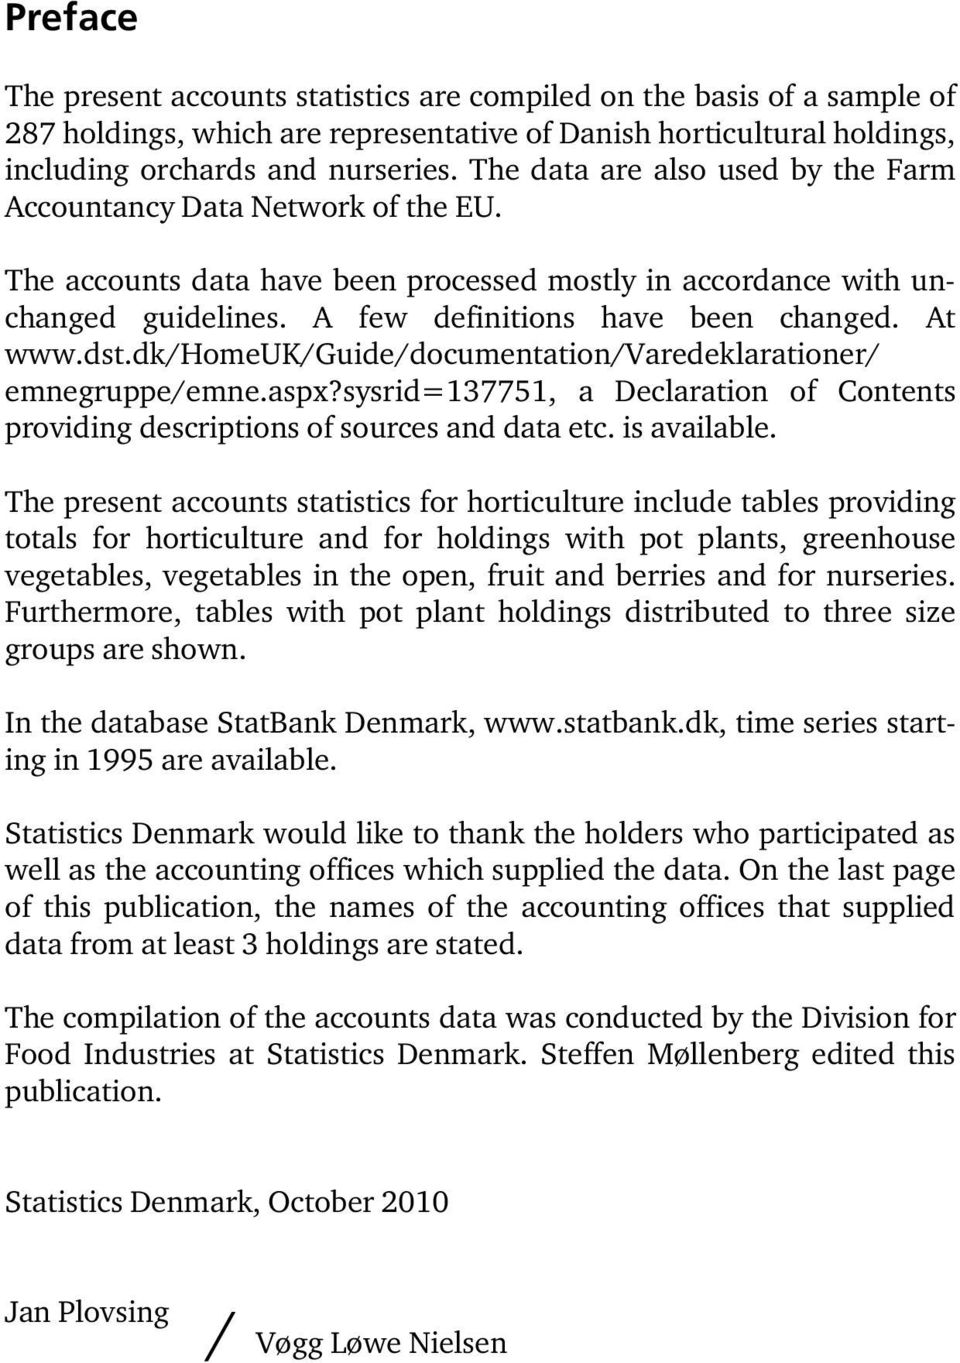 At www.dst.dk/homeuk/guide/documentation/varedeklarationer/ emnegruppe/emne.aspx?sysrid=137751, a Declaration of Contents providing descriptions of sources and data etc. is available.